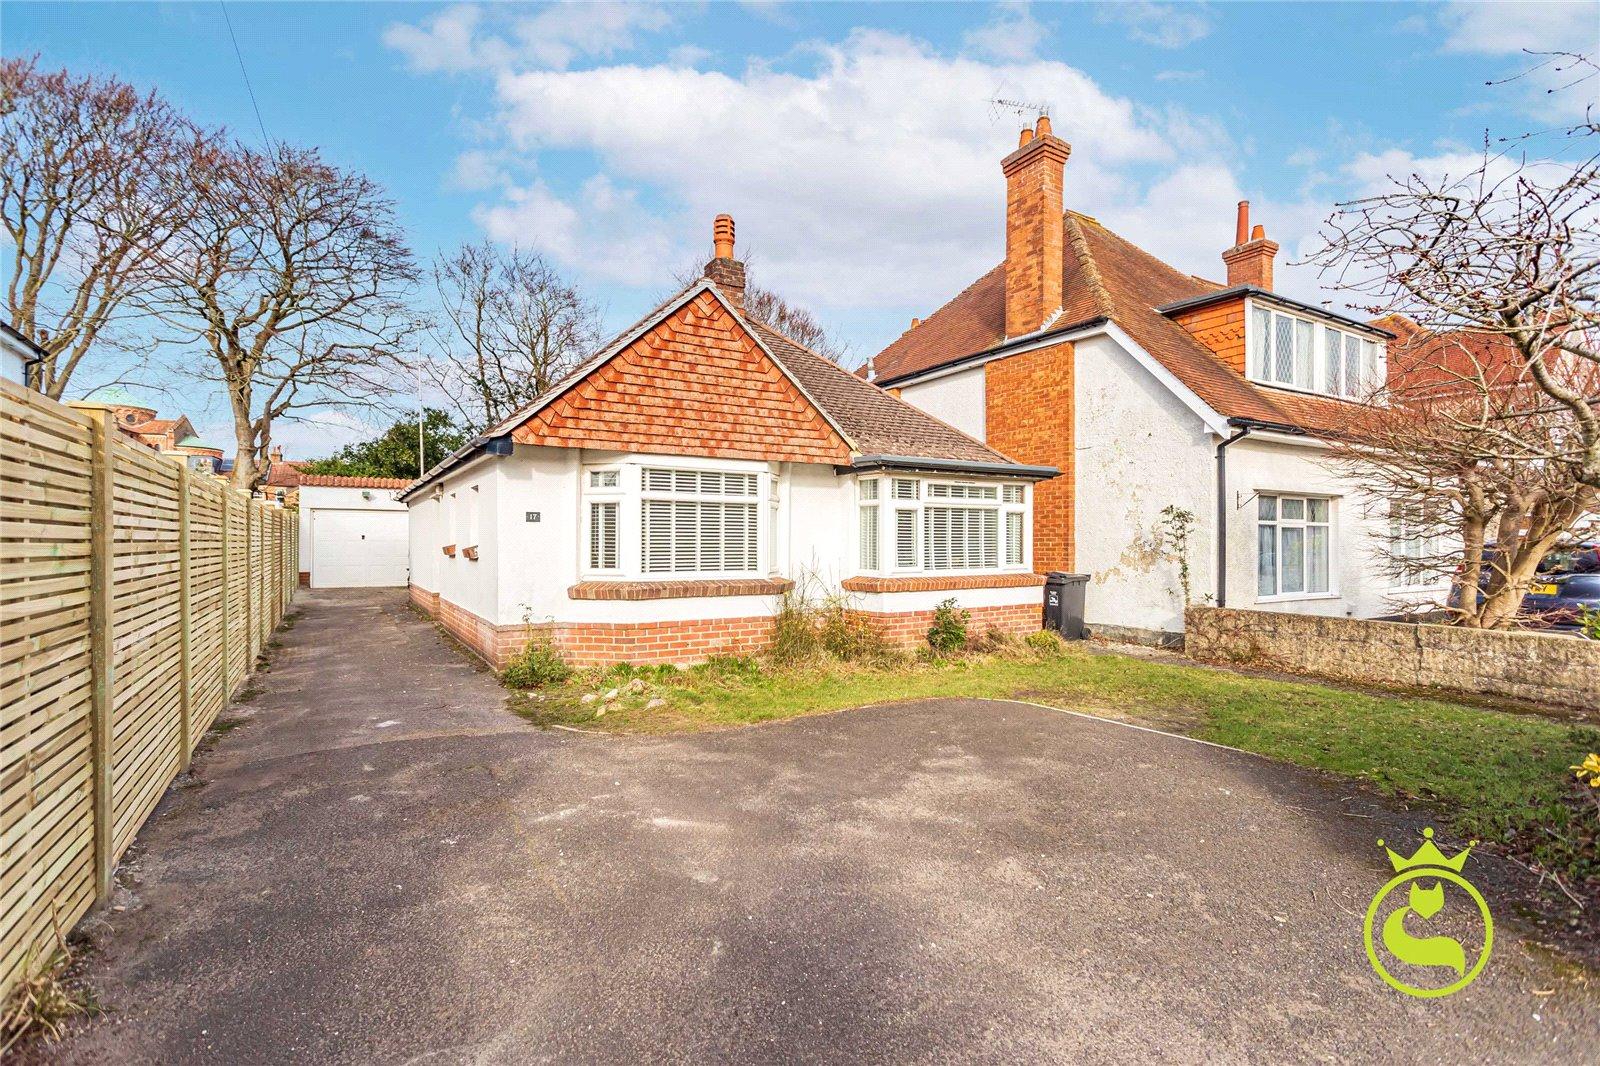 2 bed bungalow for sale in Parkstone Avenue, Lower Parkstone, BH14